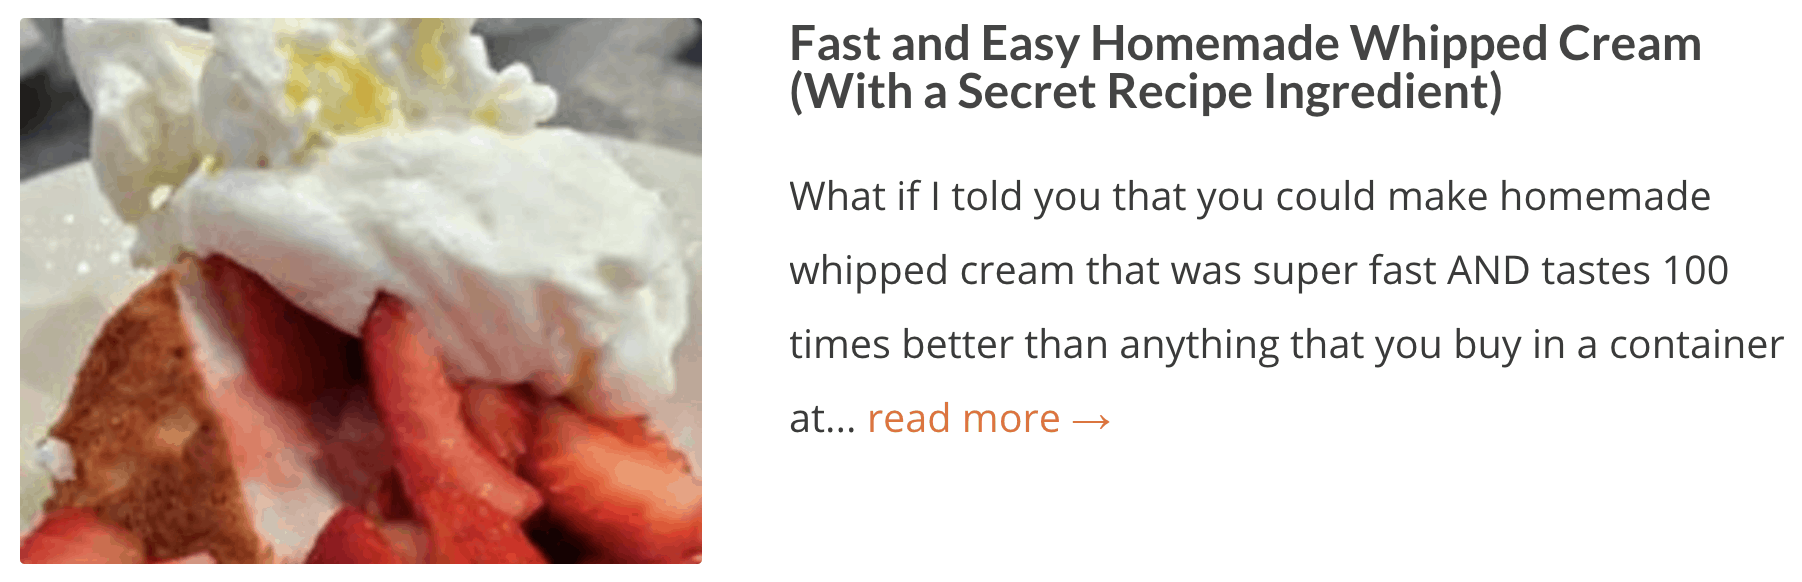 Easy Homemade Whipped Cream